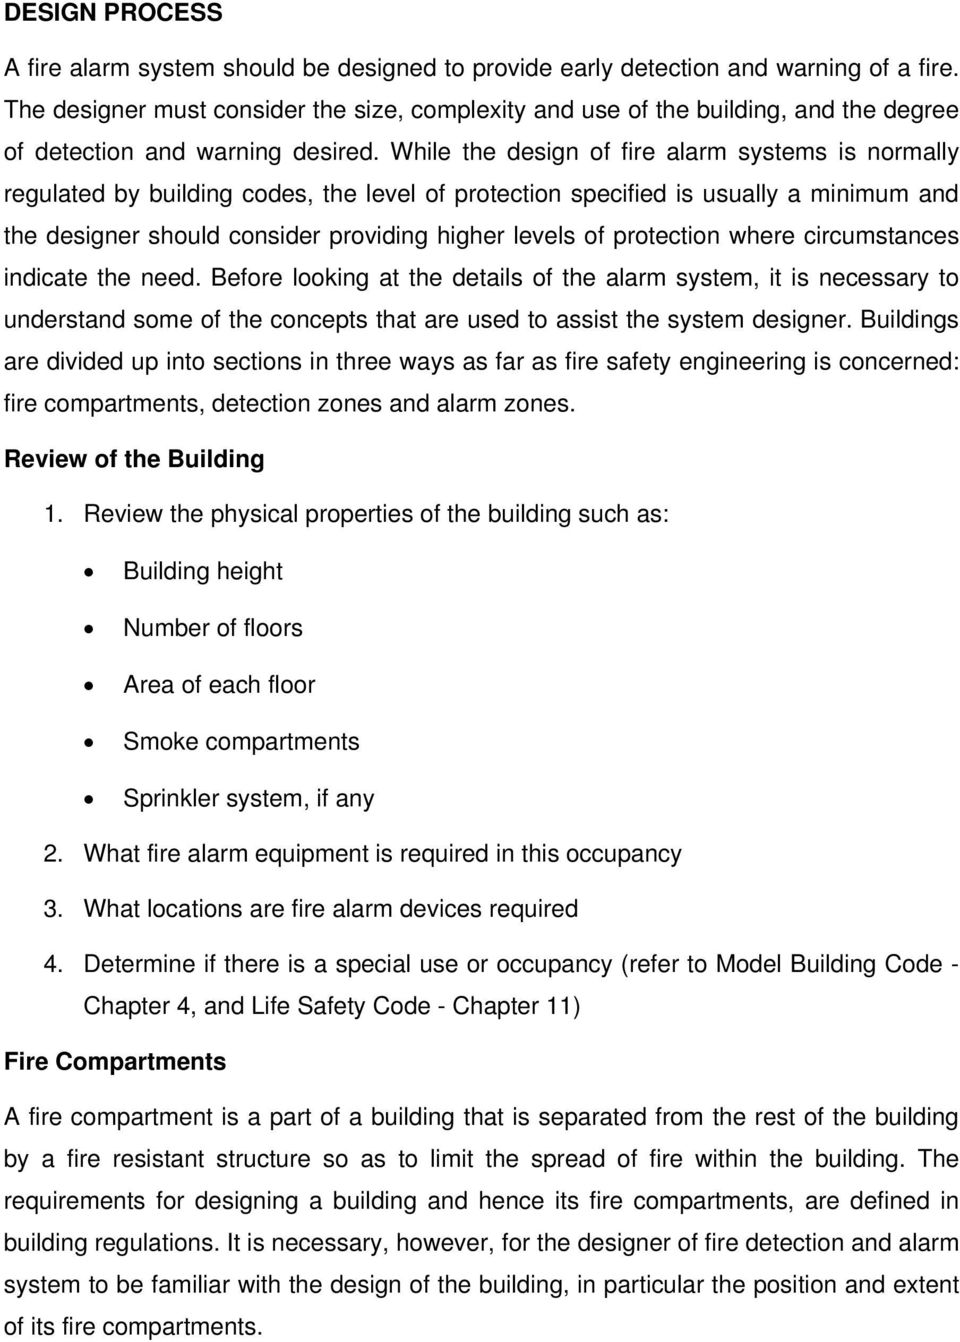 While the design of fire alarm systems is normally regulated by building codes, the level of protection specified is usually a minimum and the designer should consider providing higher levels of